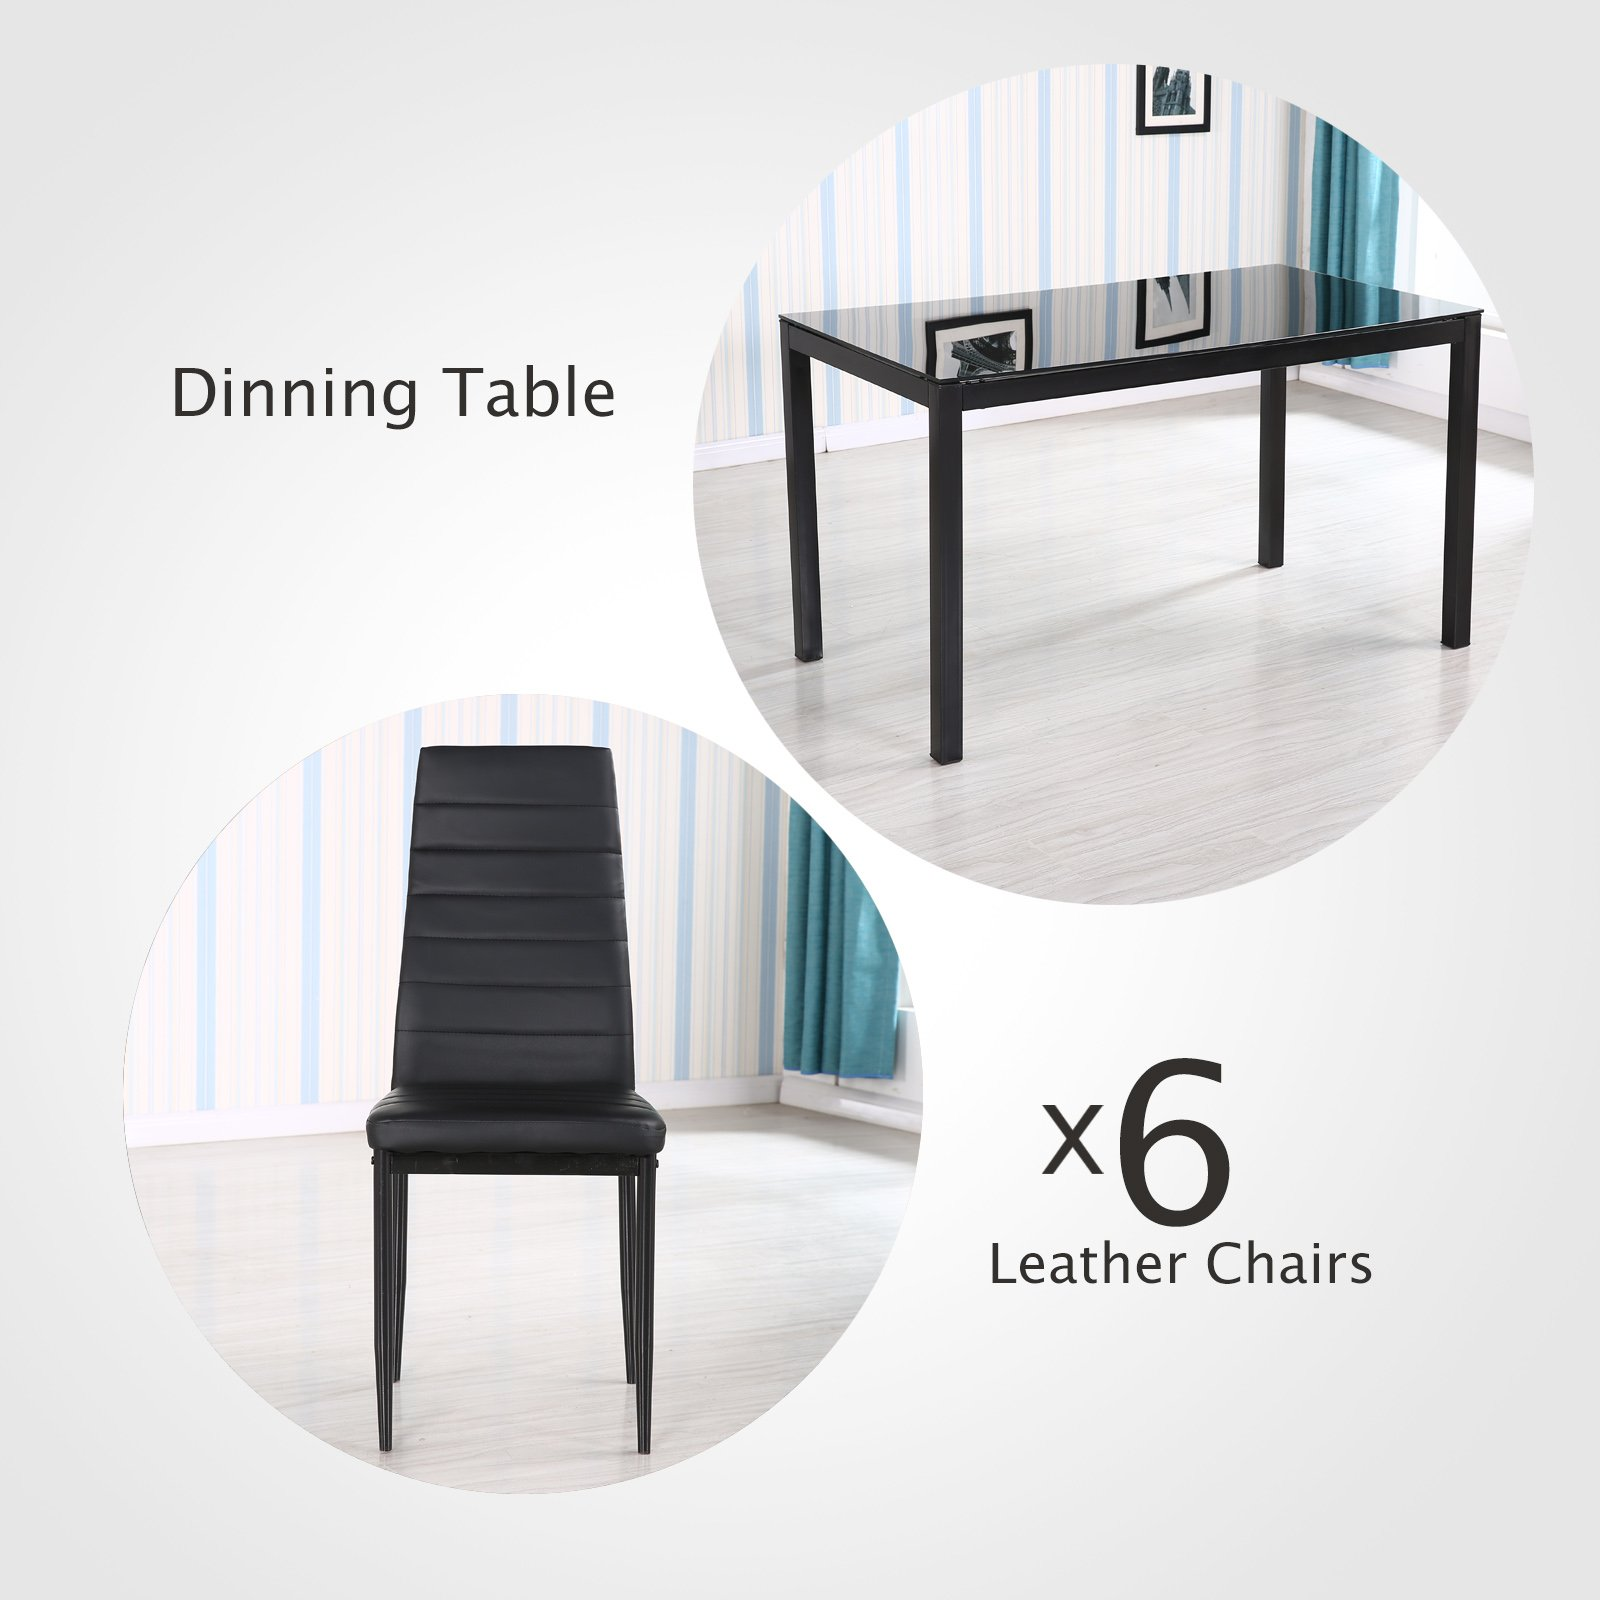 Mecor 7 Piece Kitchen Dining Set, Glass Top Table with 6 Leather Chairs Breakfast Furniture,Black by Mecor (Image #3)